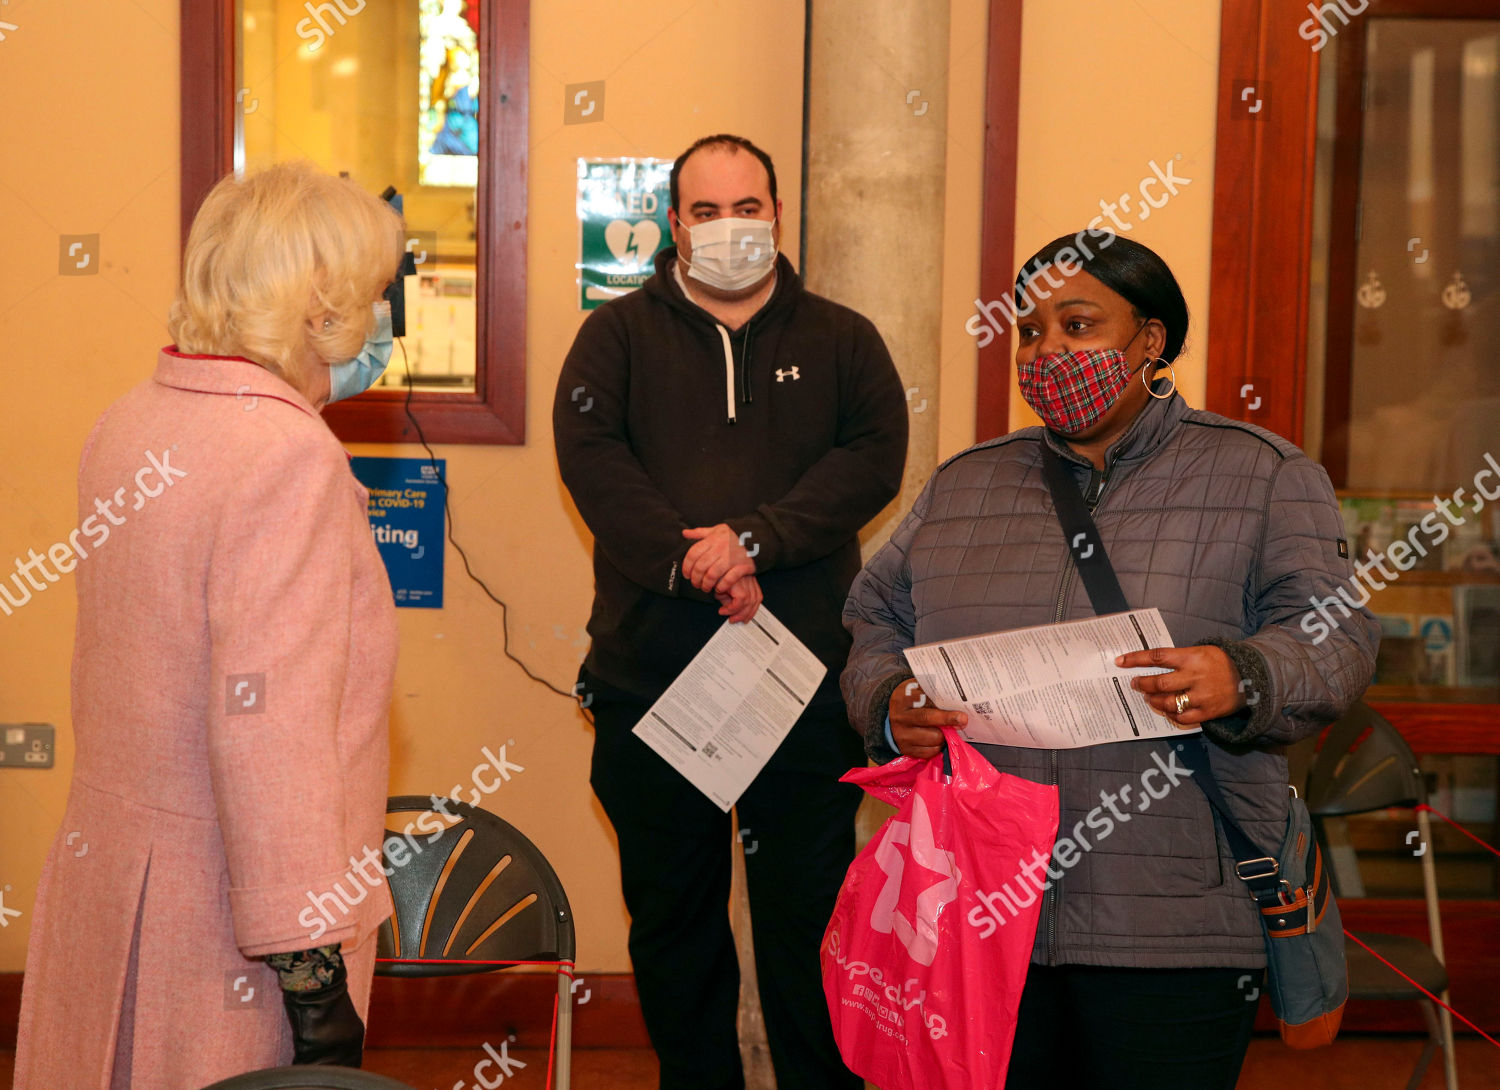 CASA REAL BRITÁNICA - Página 39 Duchess-of-cornwall-visits-vaccination-centre-st-pauls-church-croydon-uk-shutterstock-editorial-11784089d